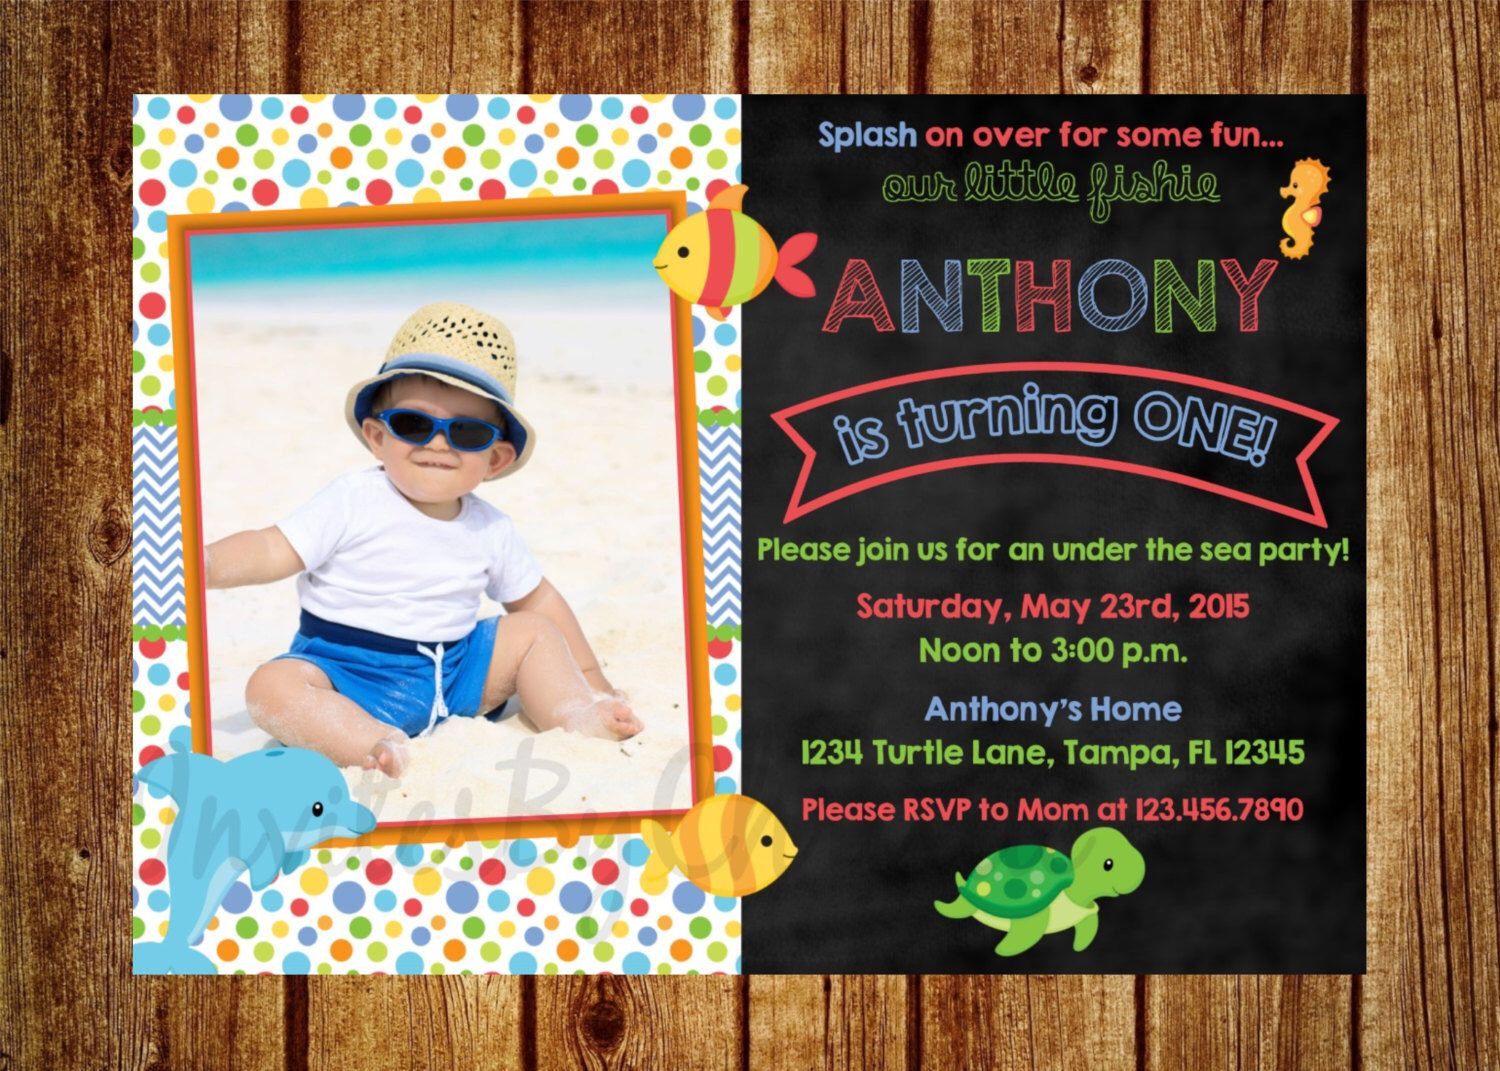 handmadest birthday party invitations%0A Under the Sea Chalkboard Photo Birthday Invitation for Boys Digital File   DIY Printable  st